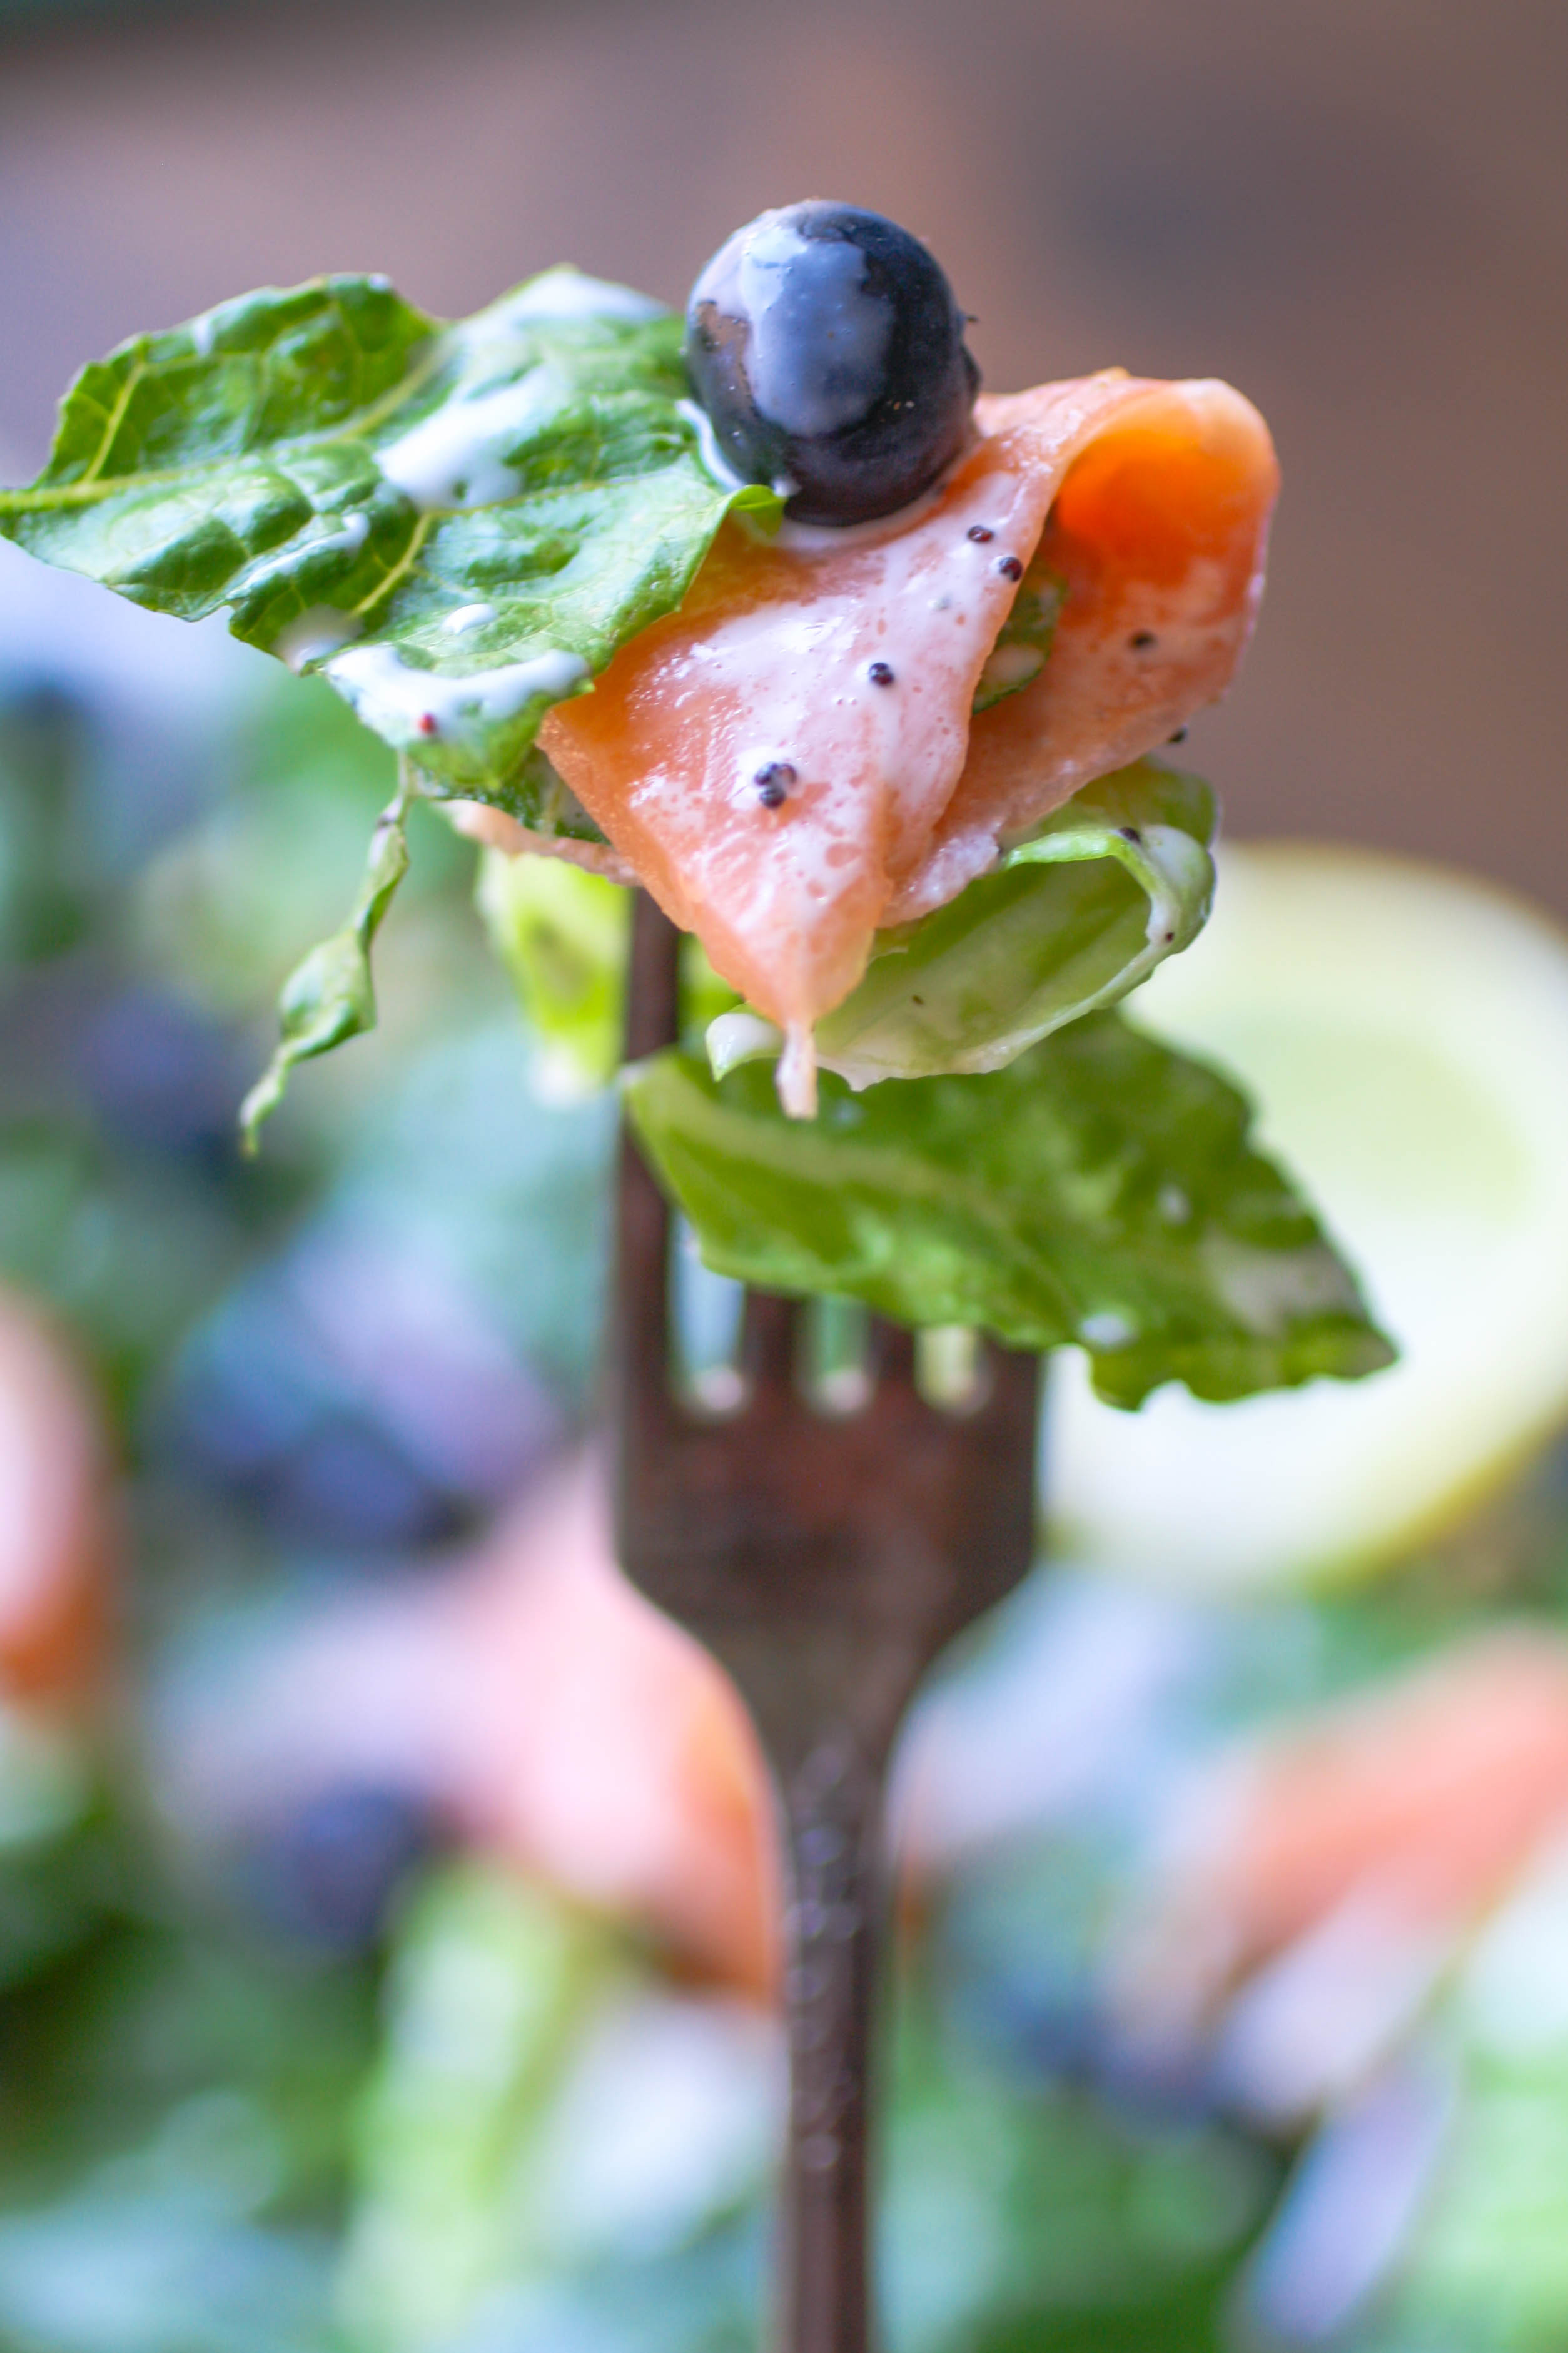 Smoked Salmon Salad with Blueberries and Lemon Poppy Seed Dressing is a delicious summer meal. Each forkful offers delicious flavor!